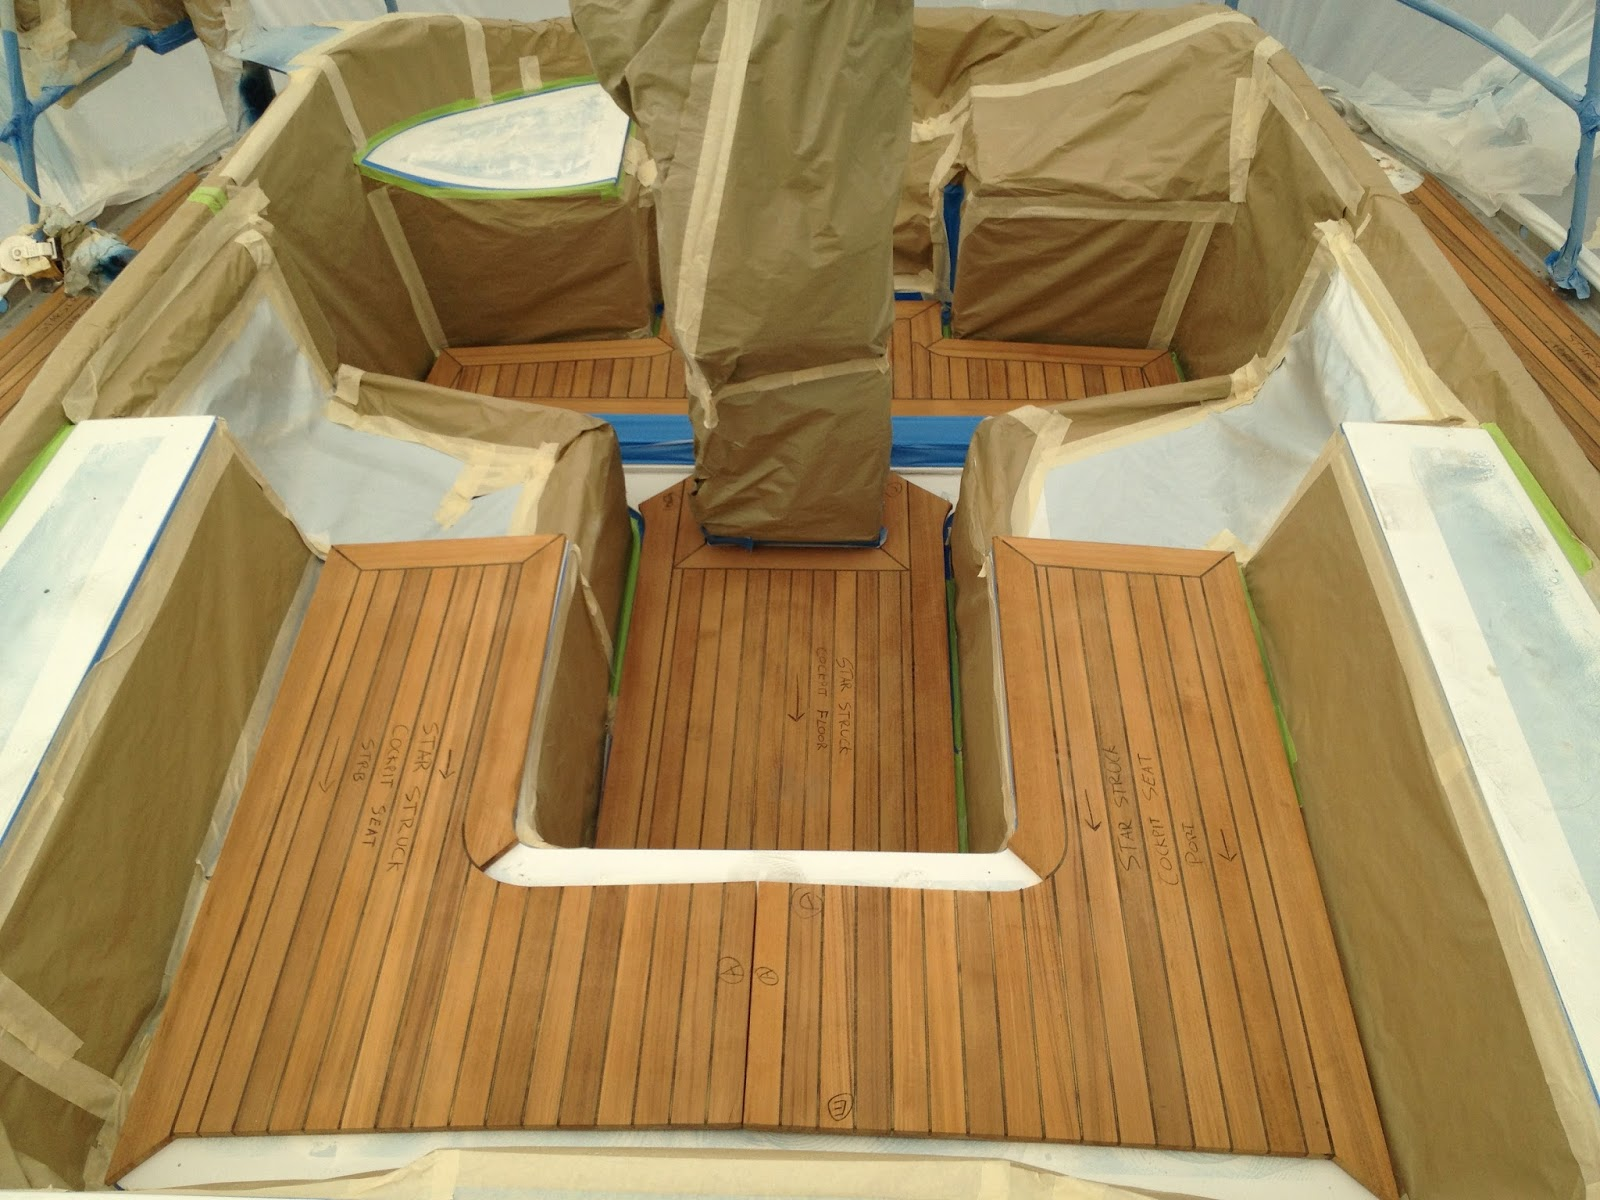 How to install a teak deck from ideal sand